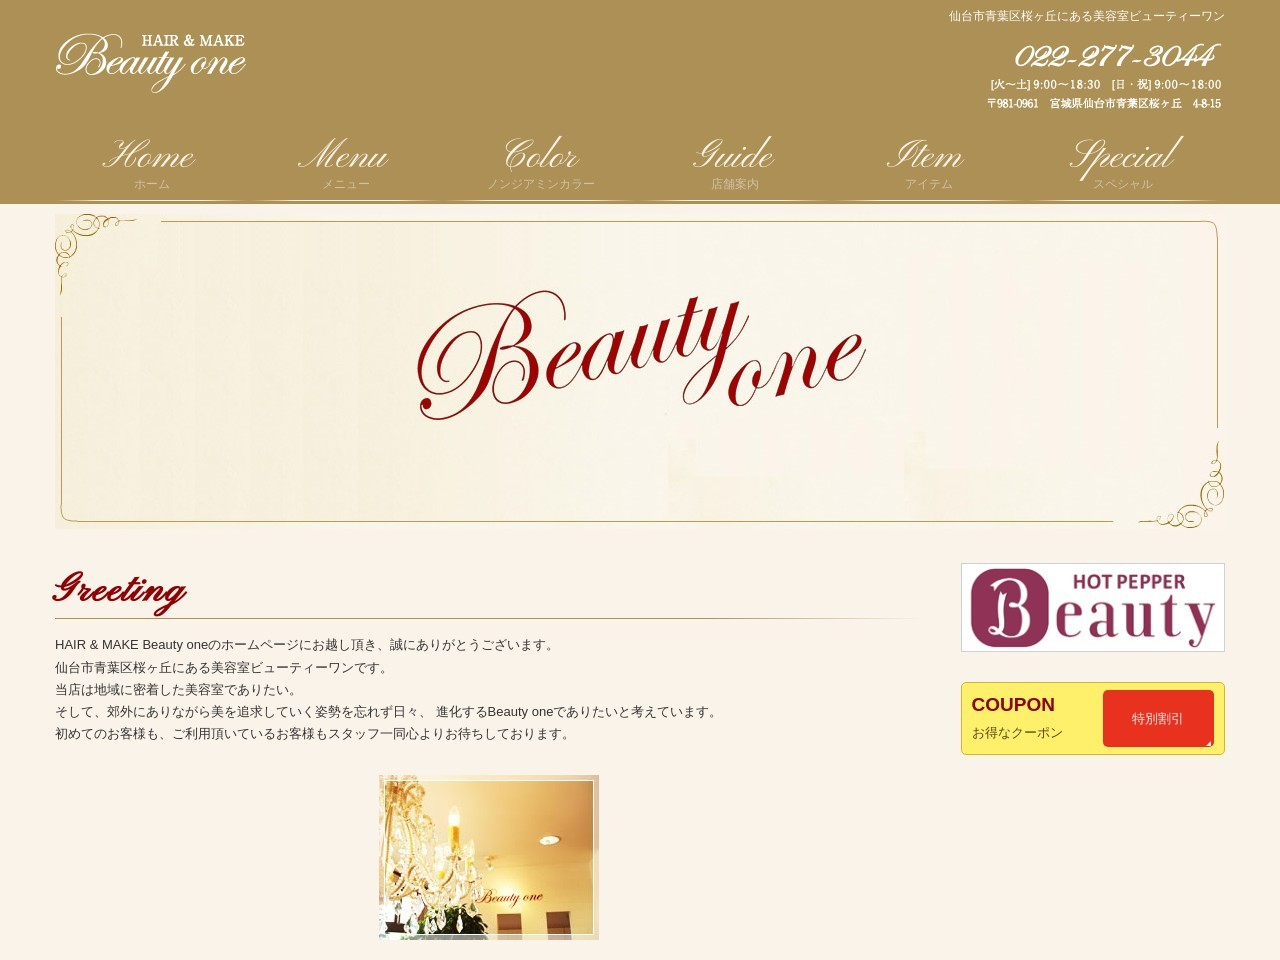 HAIR & MAKE Beauty one(ビューティーワン)